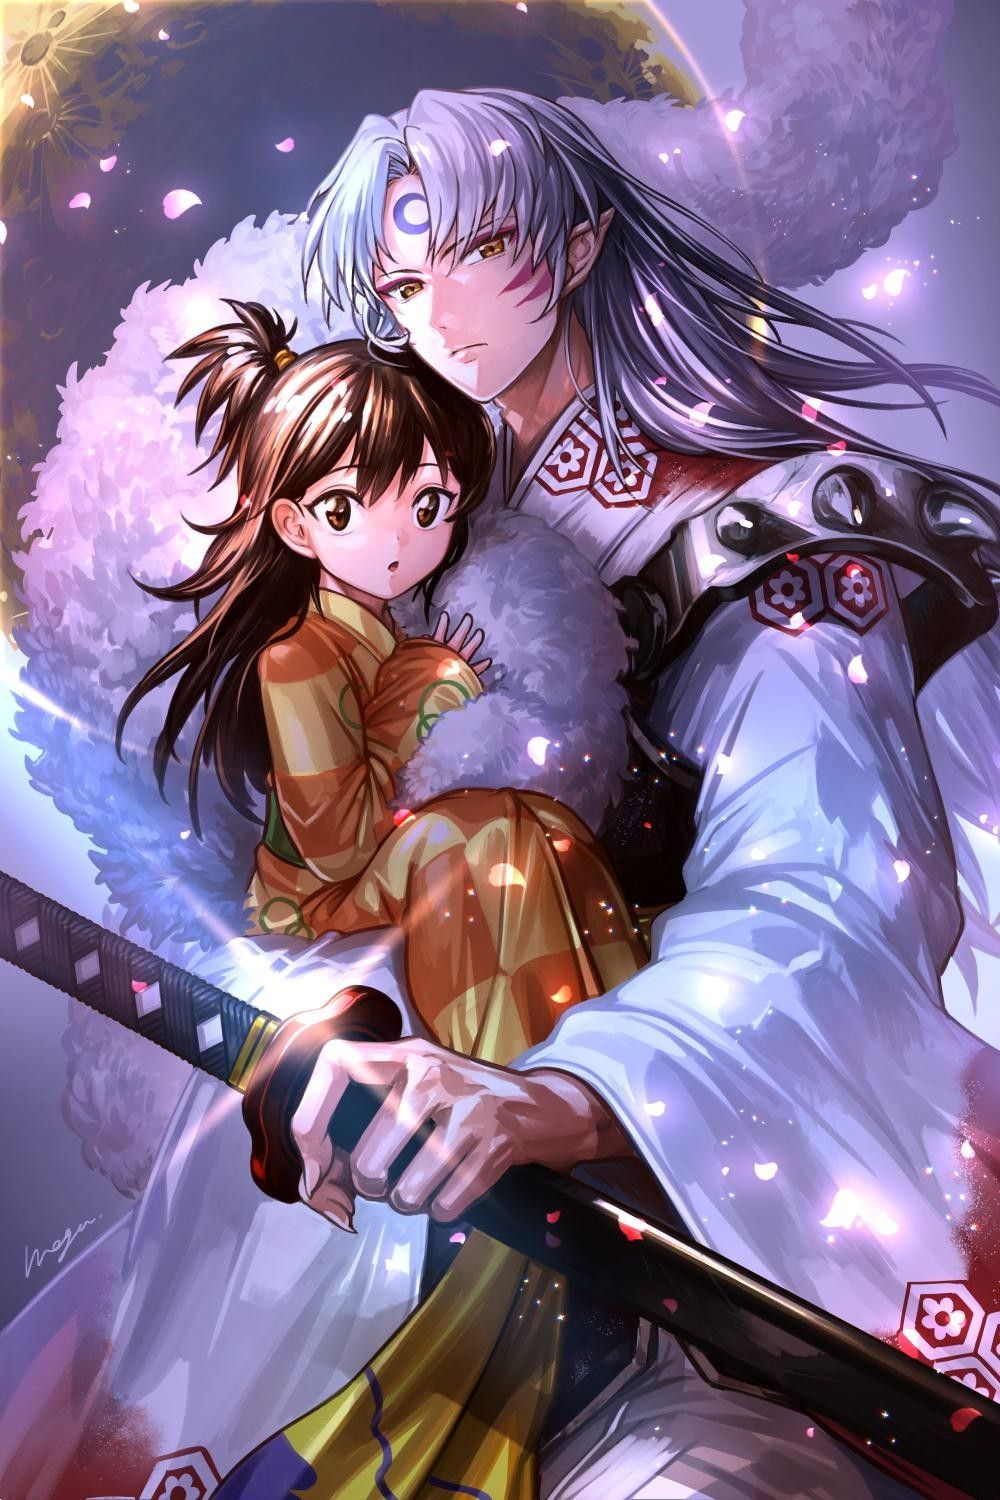 Sesshomaru and Rin Inuyasha. Credit to the artist on